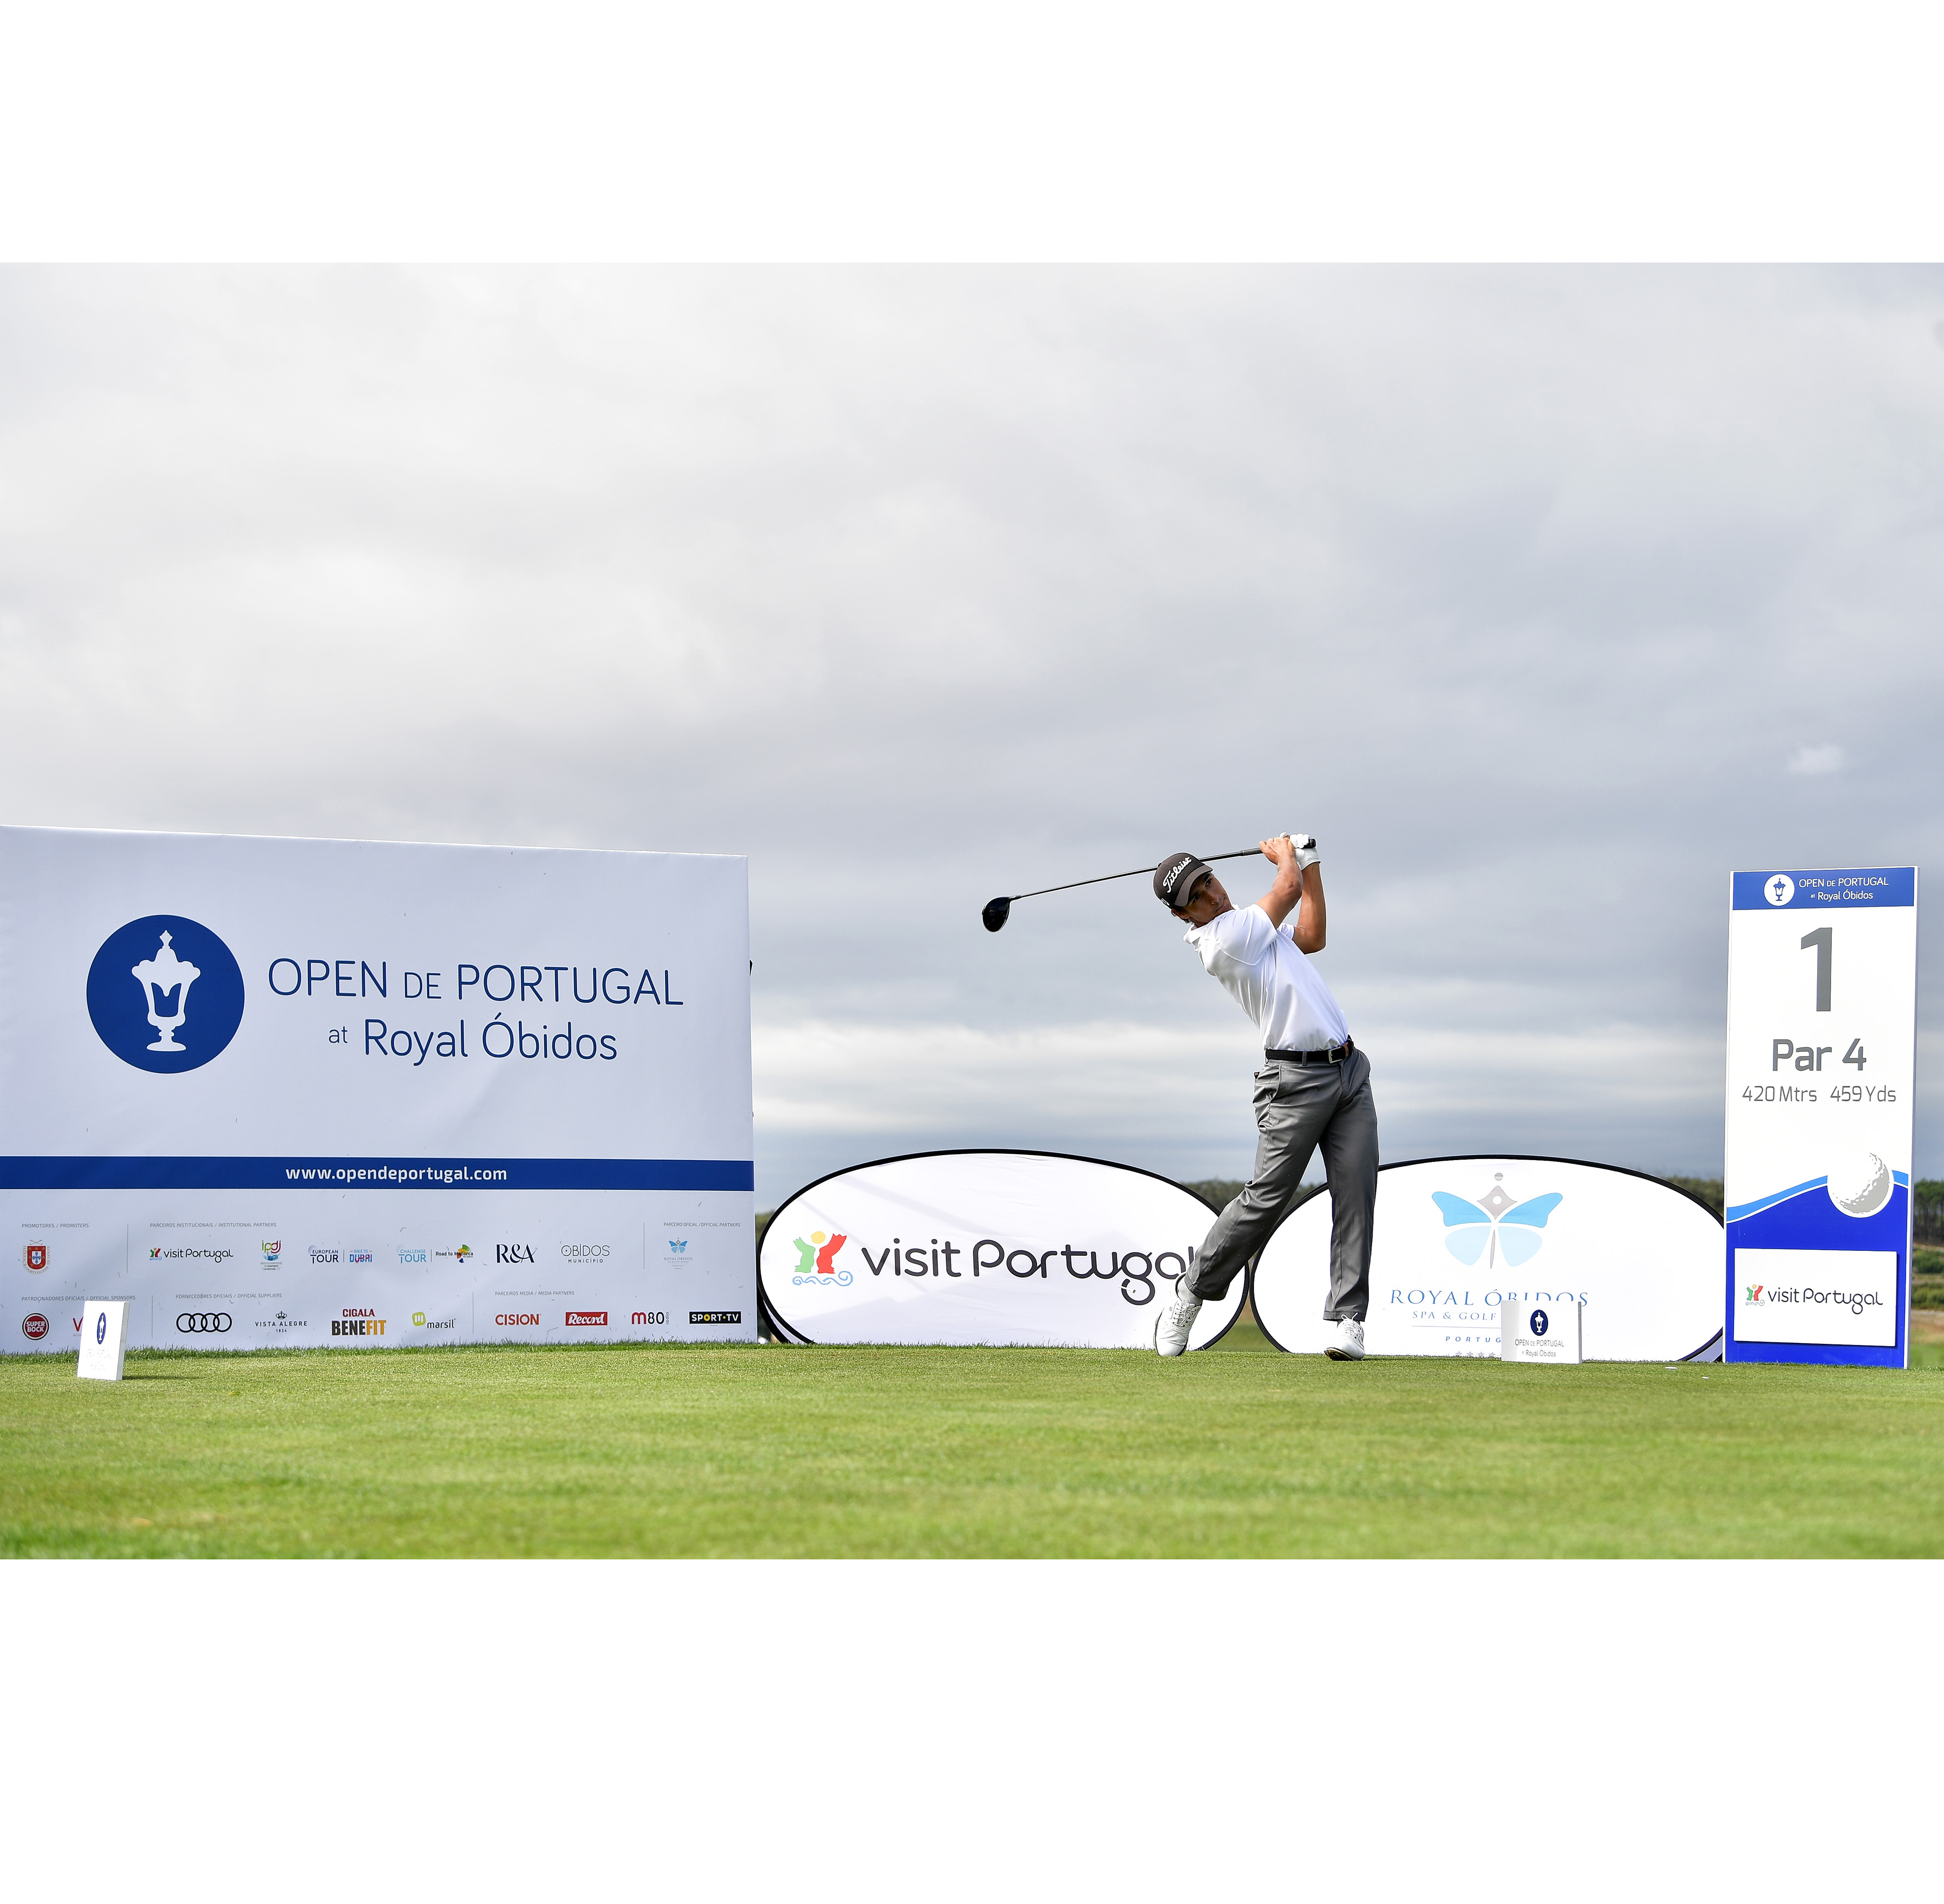 Open de Portugal at Royal Óbidos – Pedro Lencart dentro do 'cut' provisório